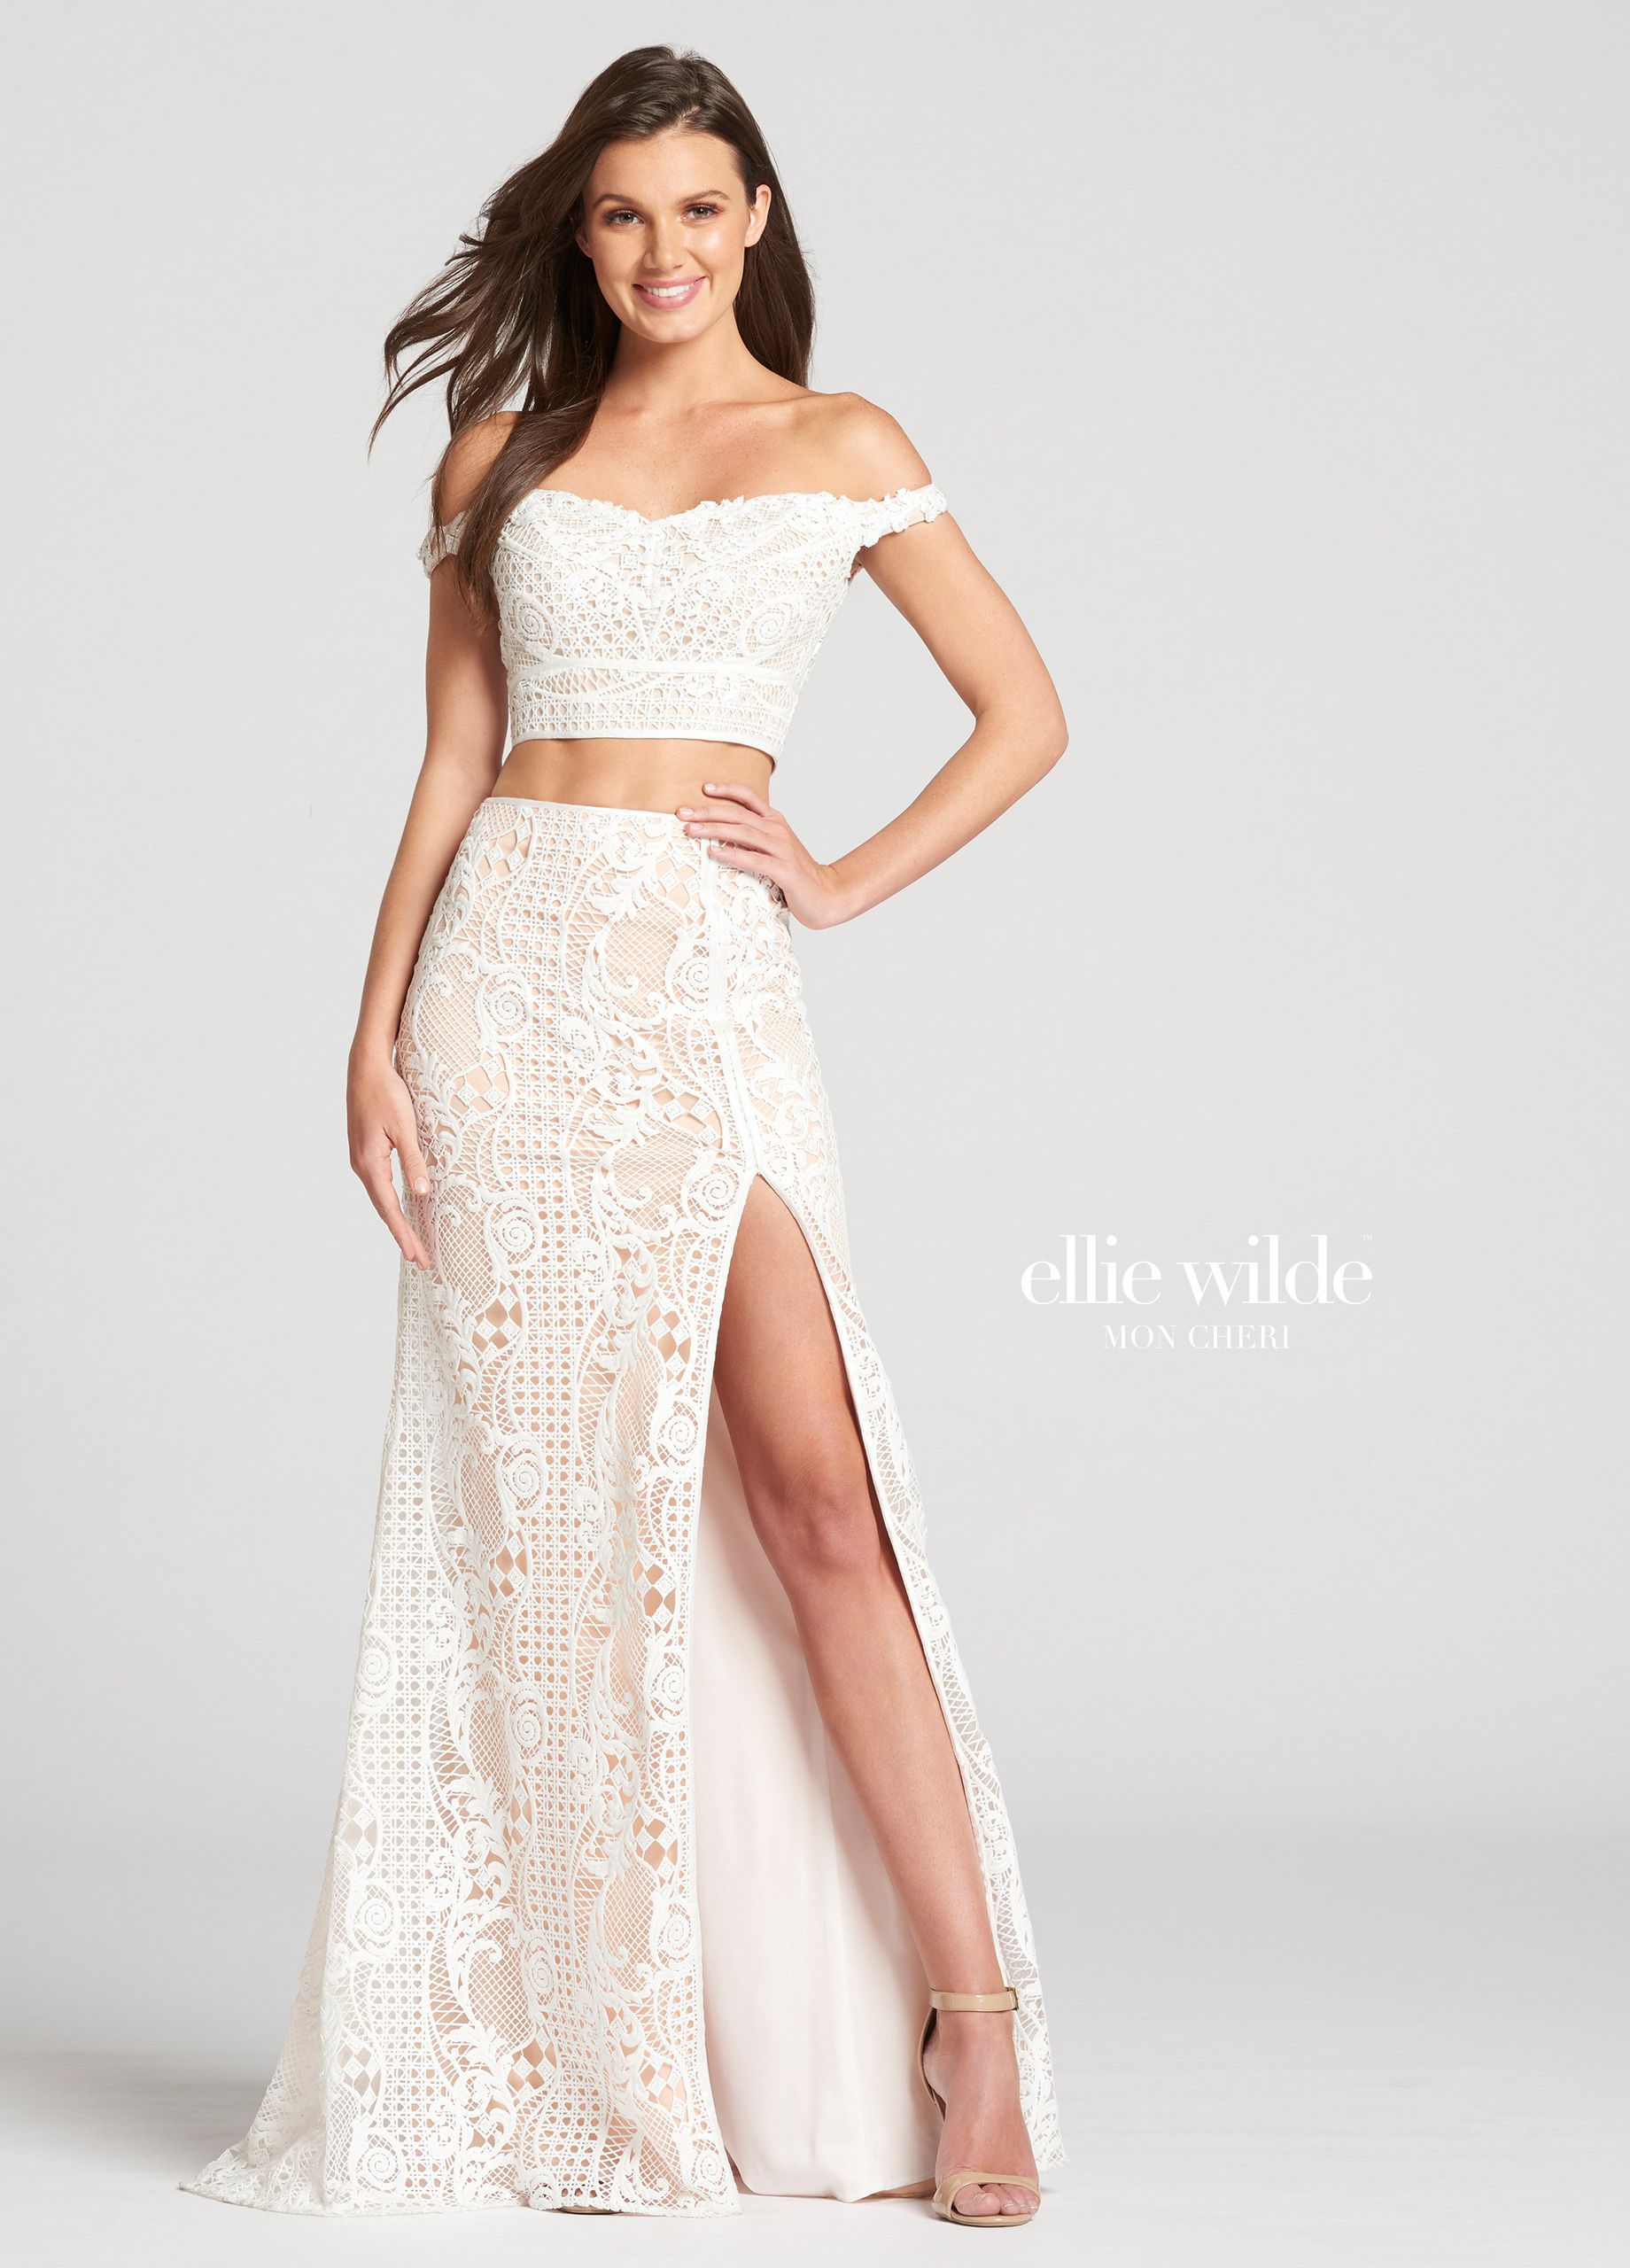 3f7775b3c0fbf1 Nude lining accentuates the lace designs in the cropped top and  high-waisted skirt which is fitted ...